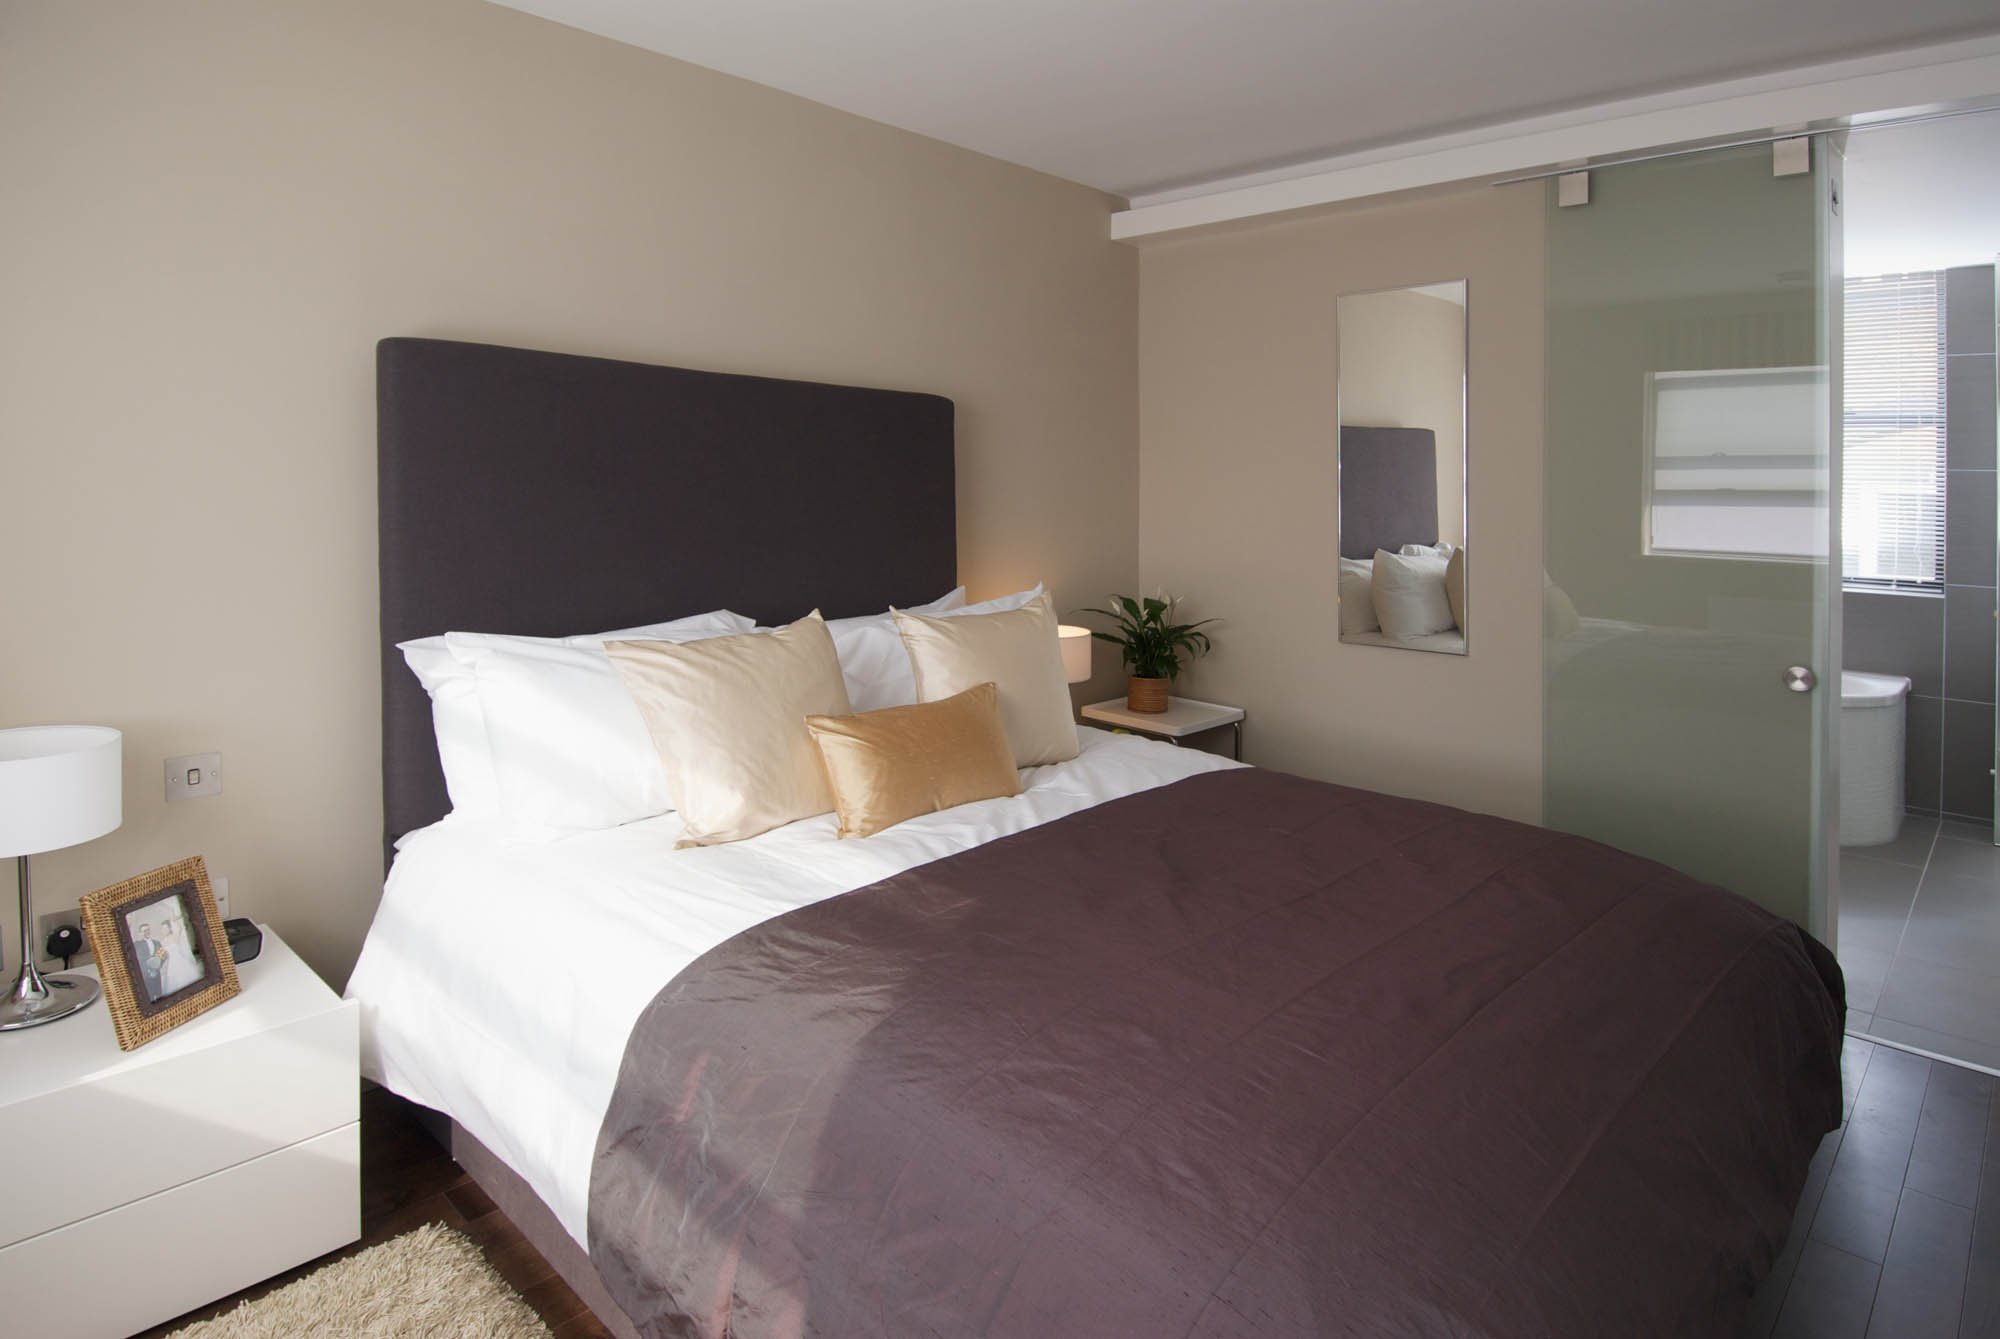 Serviced-Accommodation-Blackfriars|-5-star-short-Let-Apartments-|-Air-Con|-24h-reception-|-Free-Wi-Fi